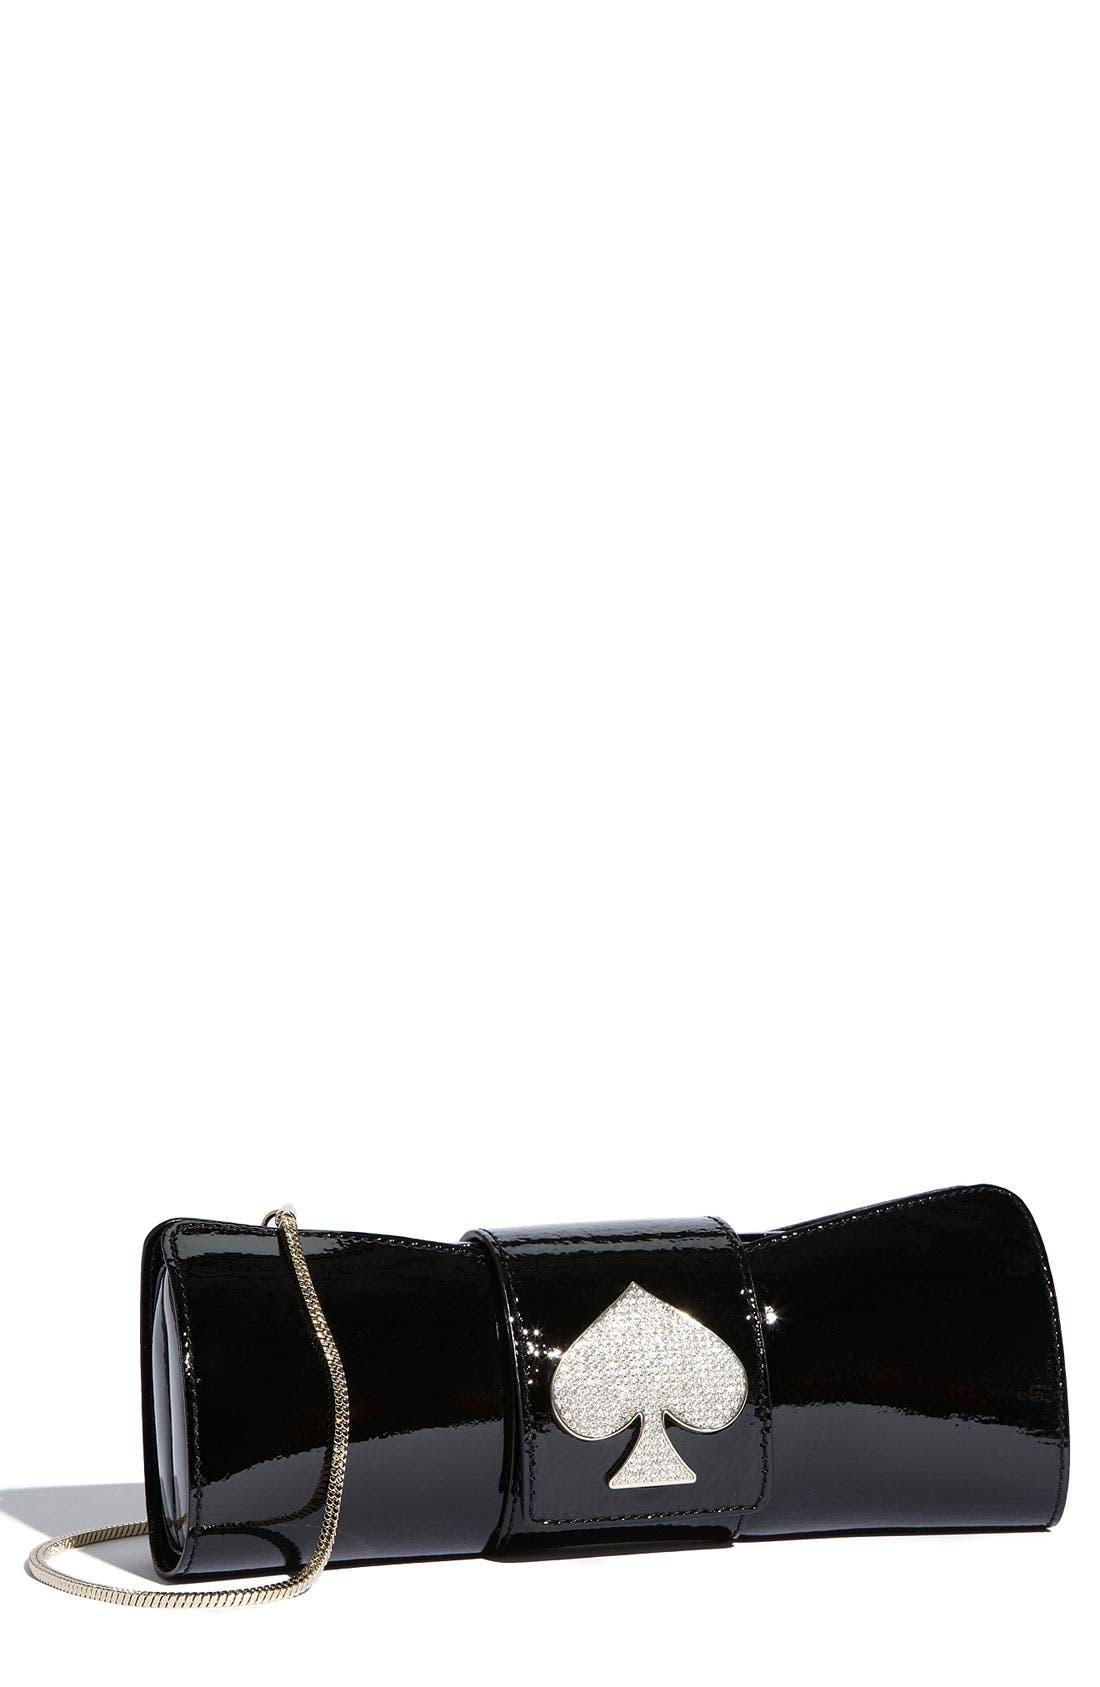 KATE SPADE NEW YORK 'sparkle spade bow' clutch, Main, color, 001